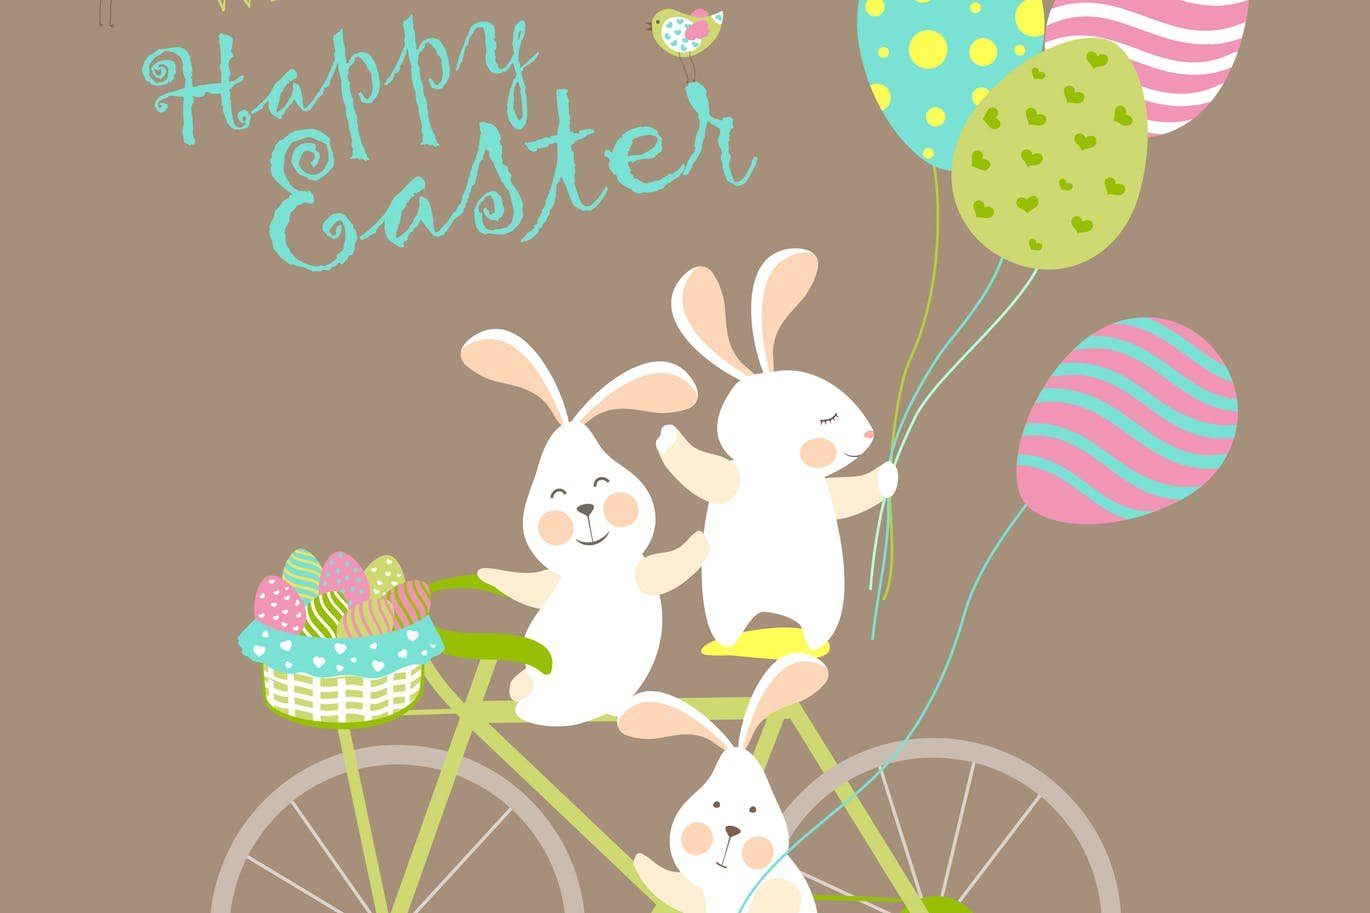 220 Best Easter Graphics in 2020: Free & Premium - 6203 Large